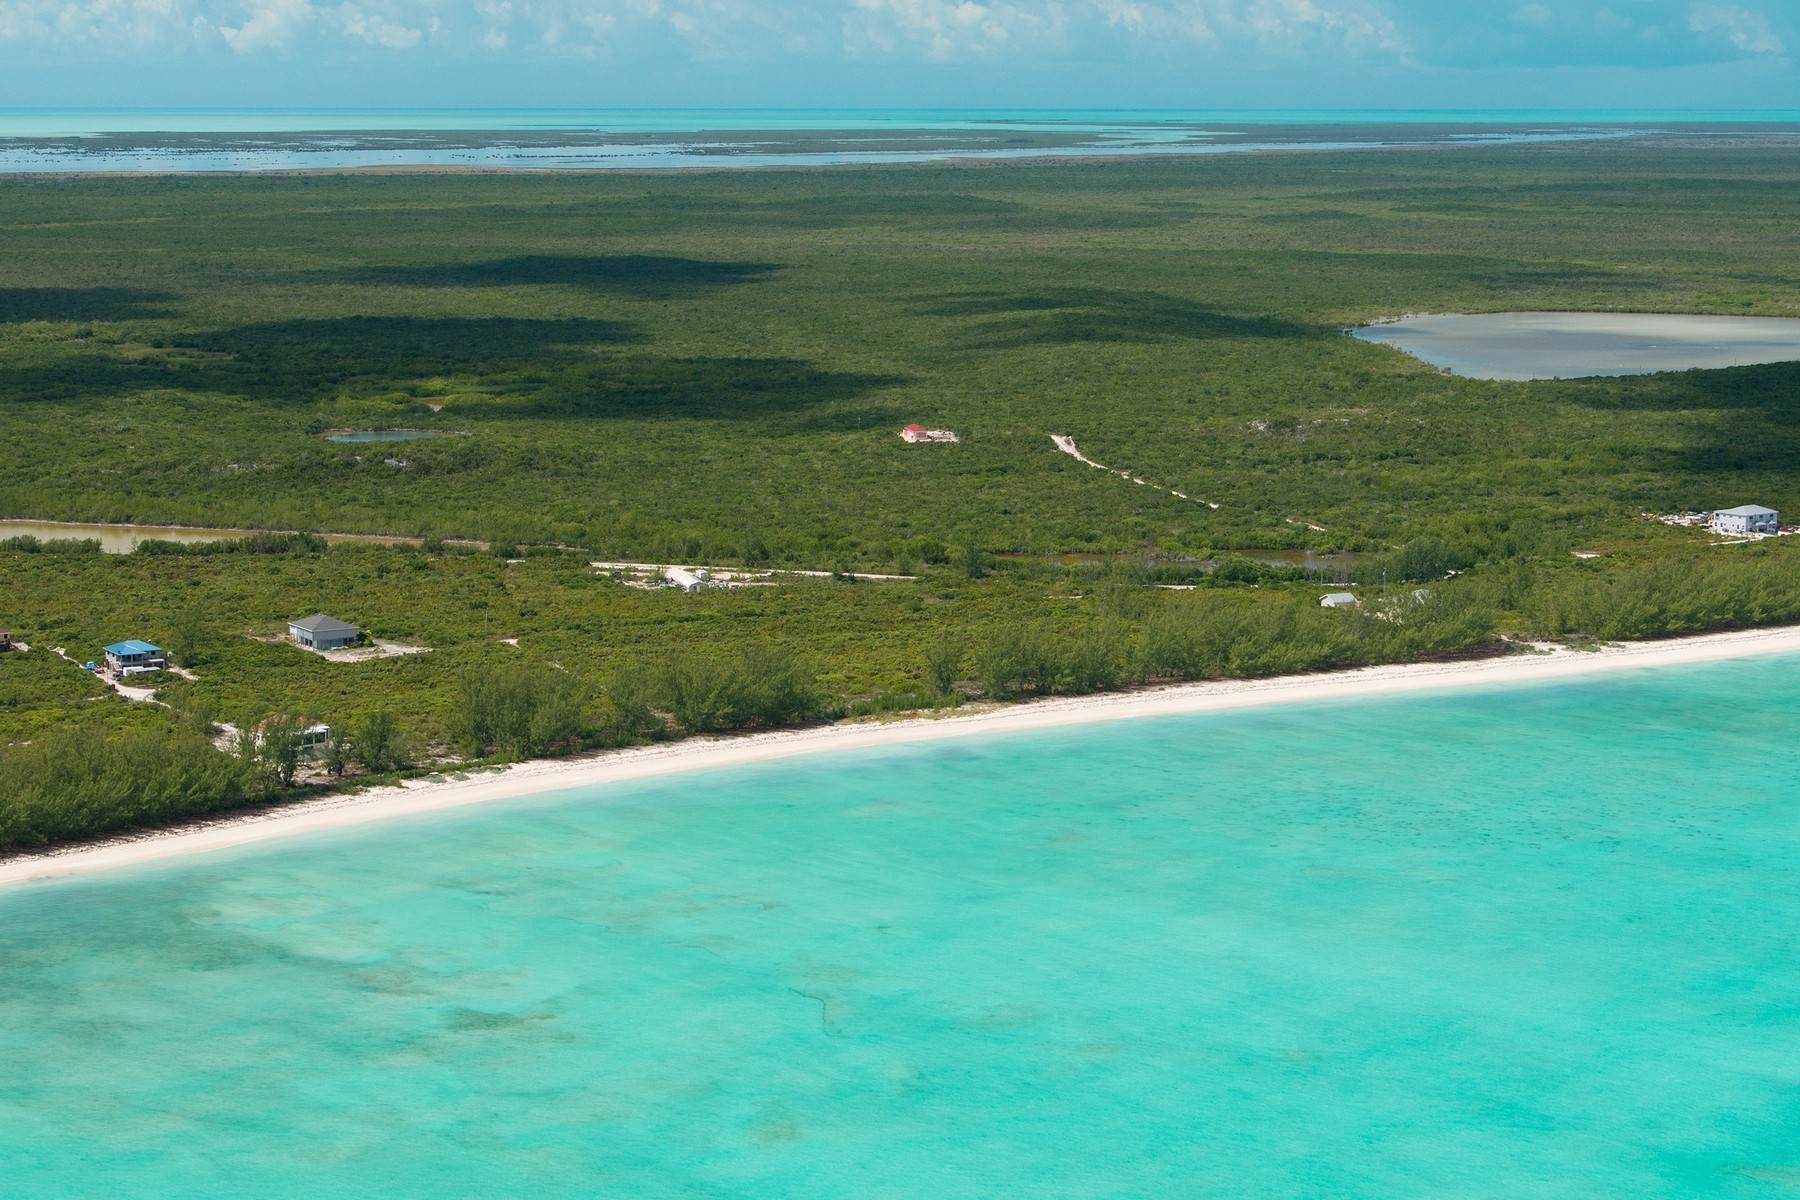 Land for Sale at MIDDLE CAICOS UNDEVELOPED LAND Other Turks And Caicos Islands, Other Areas In The Turks And Caicos Islands Turks And Caicos Islands